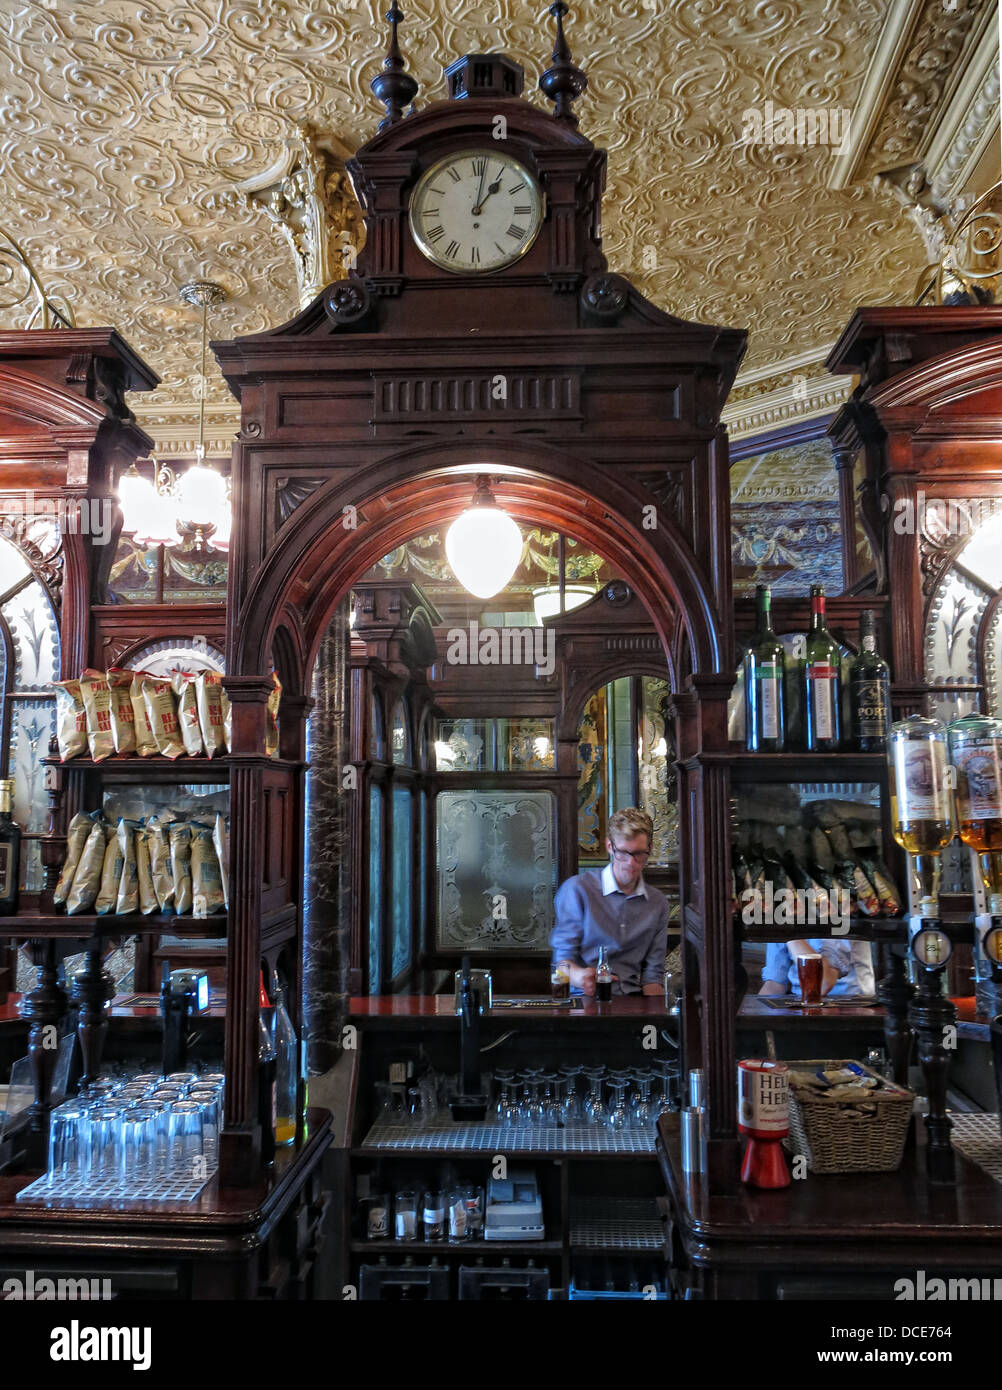 Wooden Bar clock Princess Louise Pub Holborn London City England - Stock Image